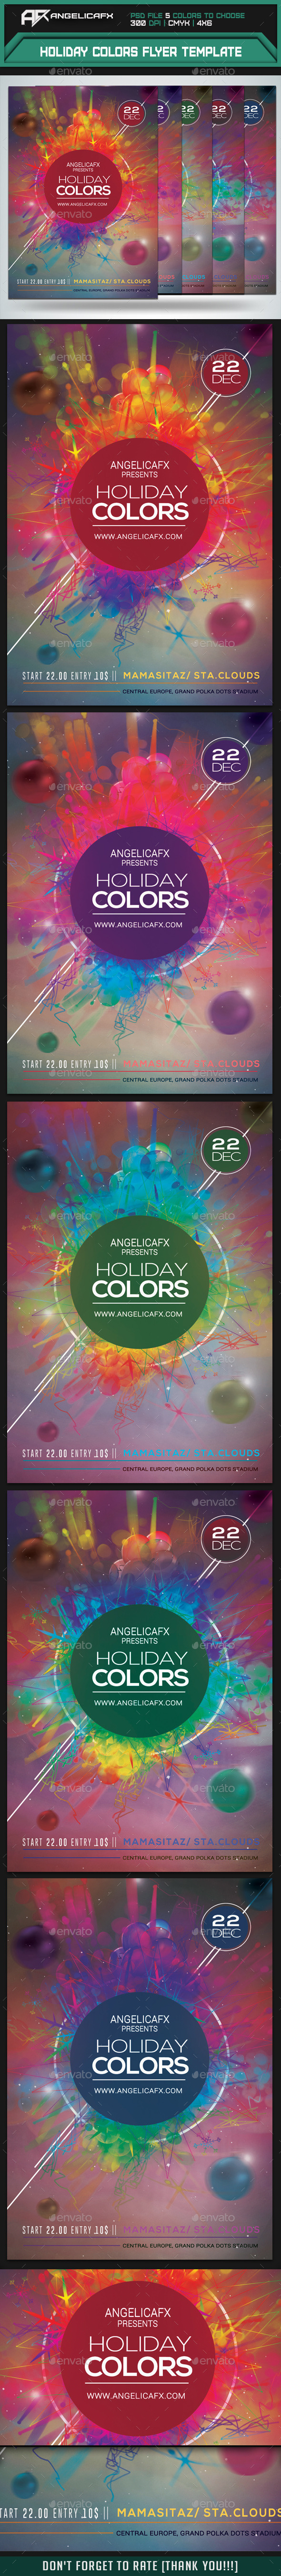 Holiday Colors Flyer Template - Clubs & Parties Events